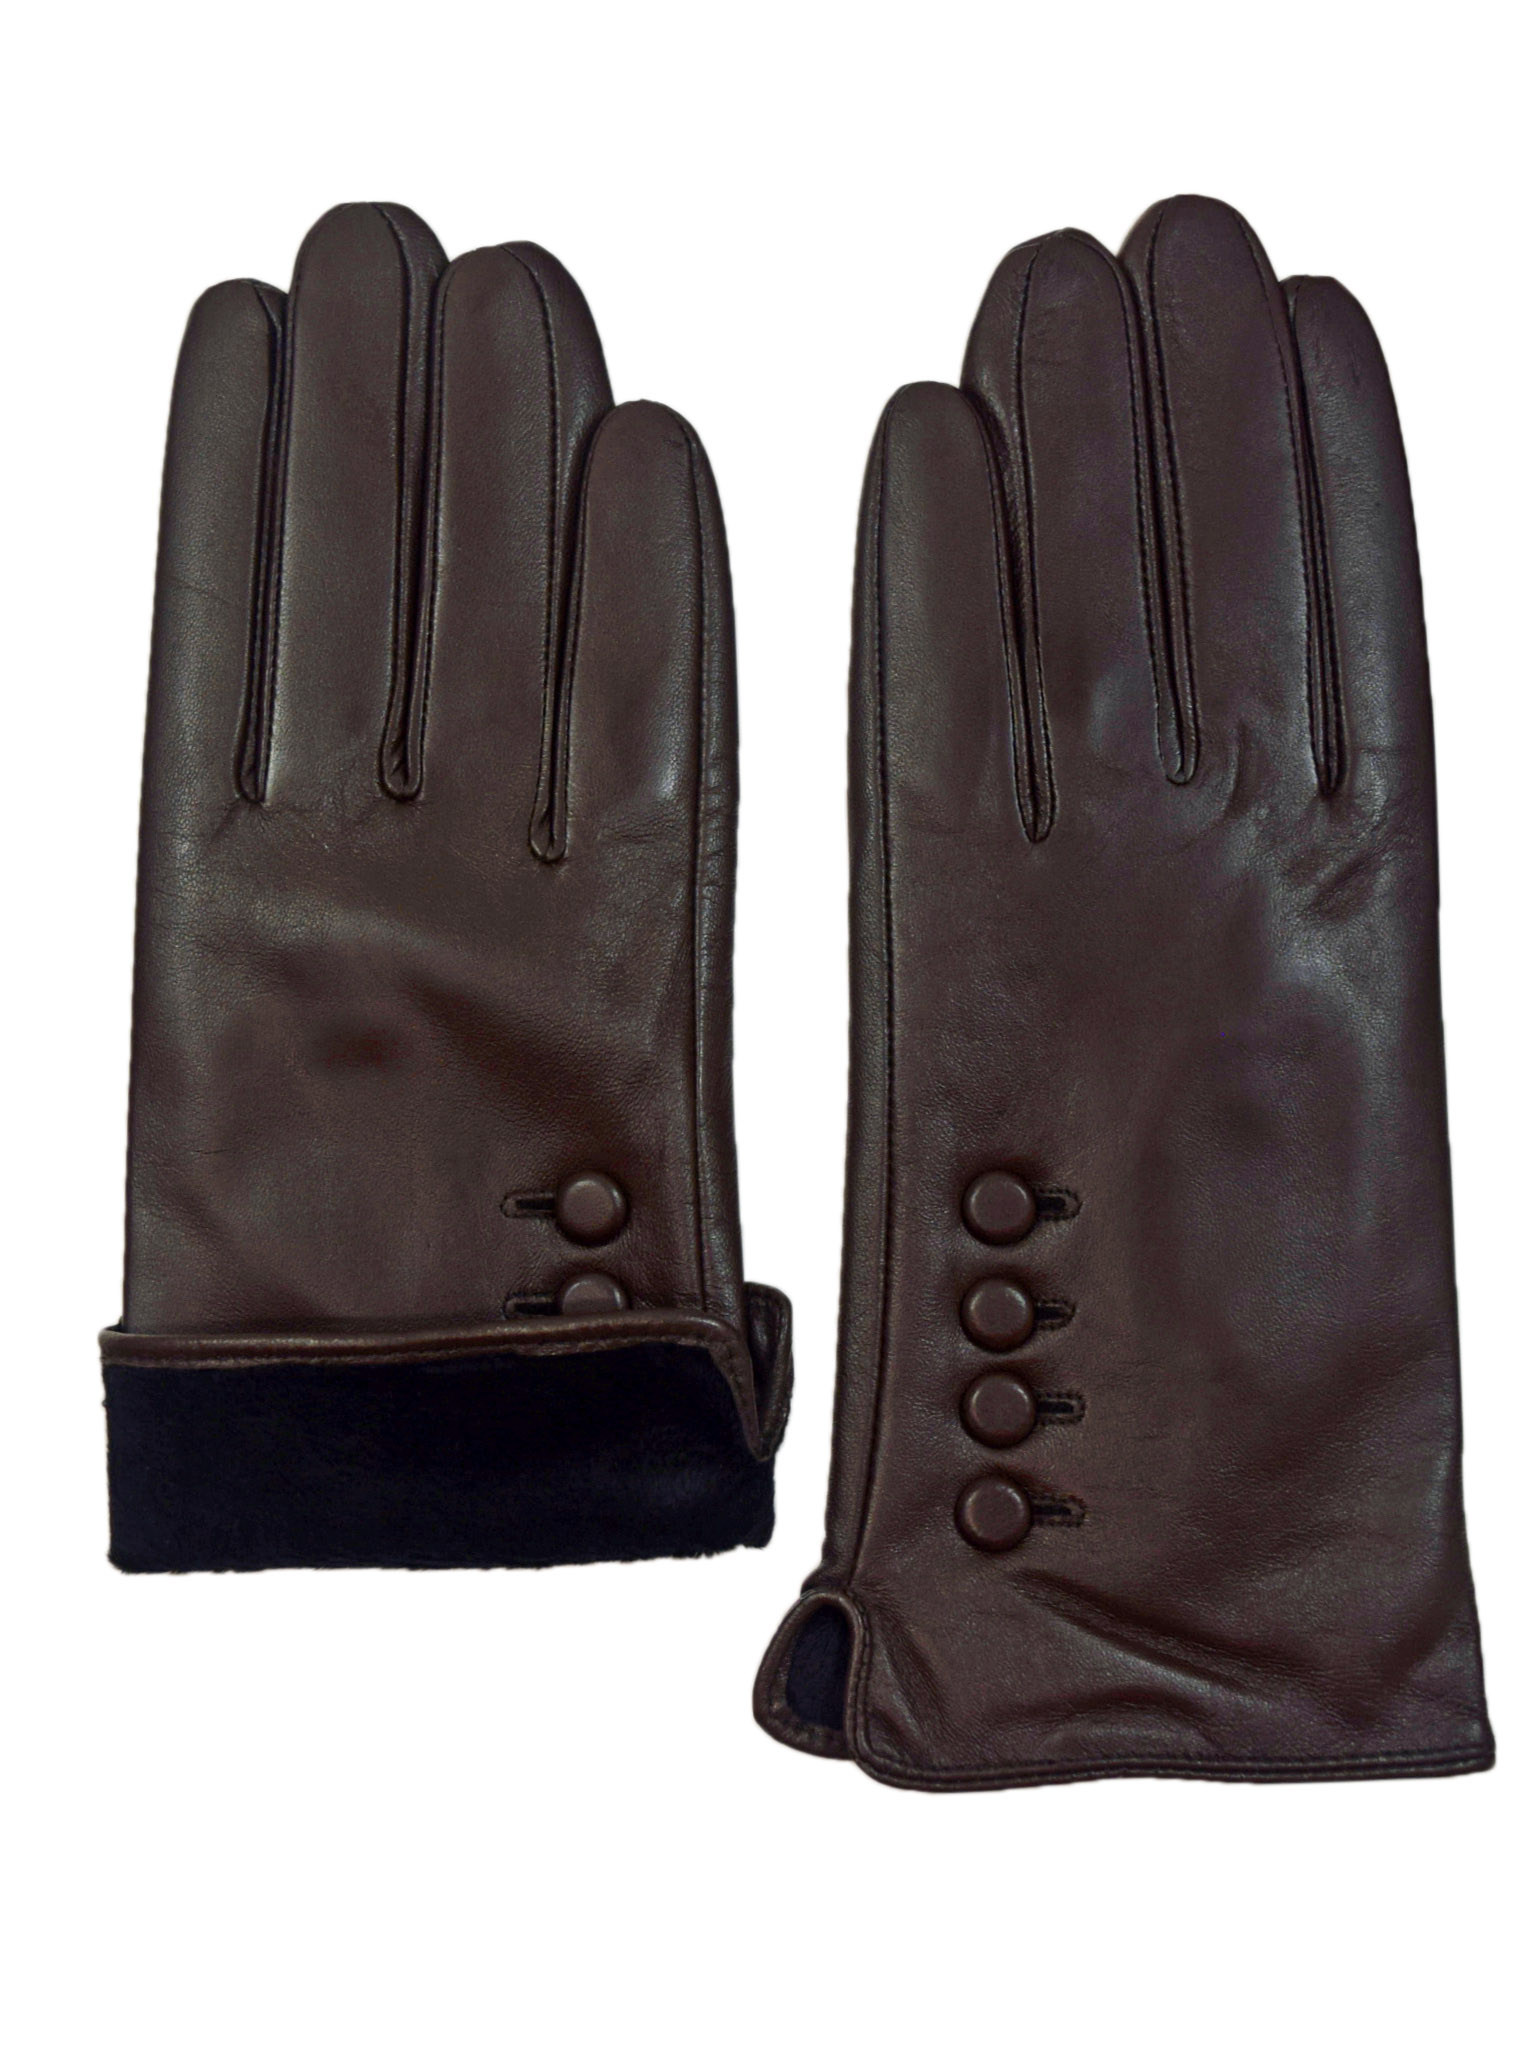 Giromy-Samoni-Womens-Warm-Winter-Plush-Lined-Leather-Driving-Gloves-Brown thumbnail 10